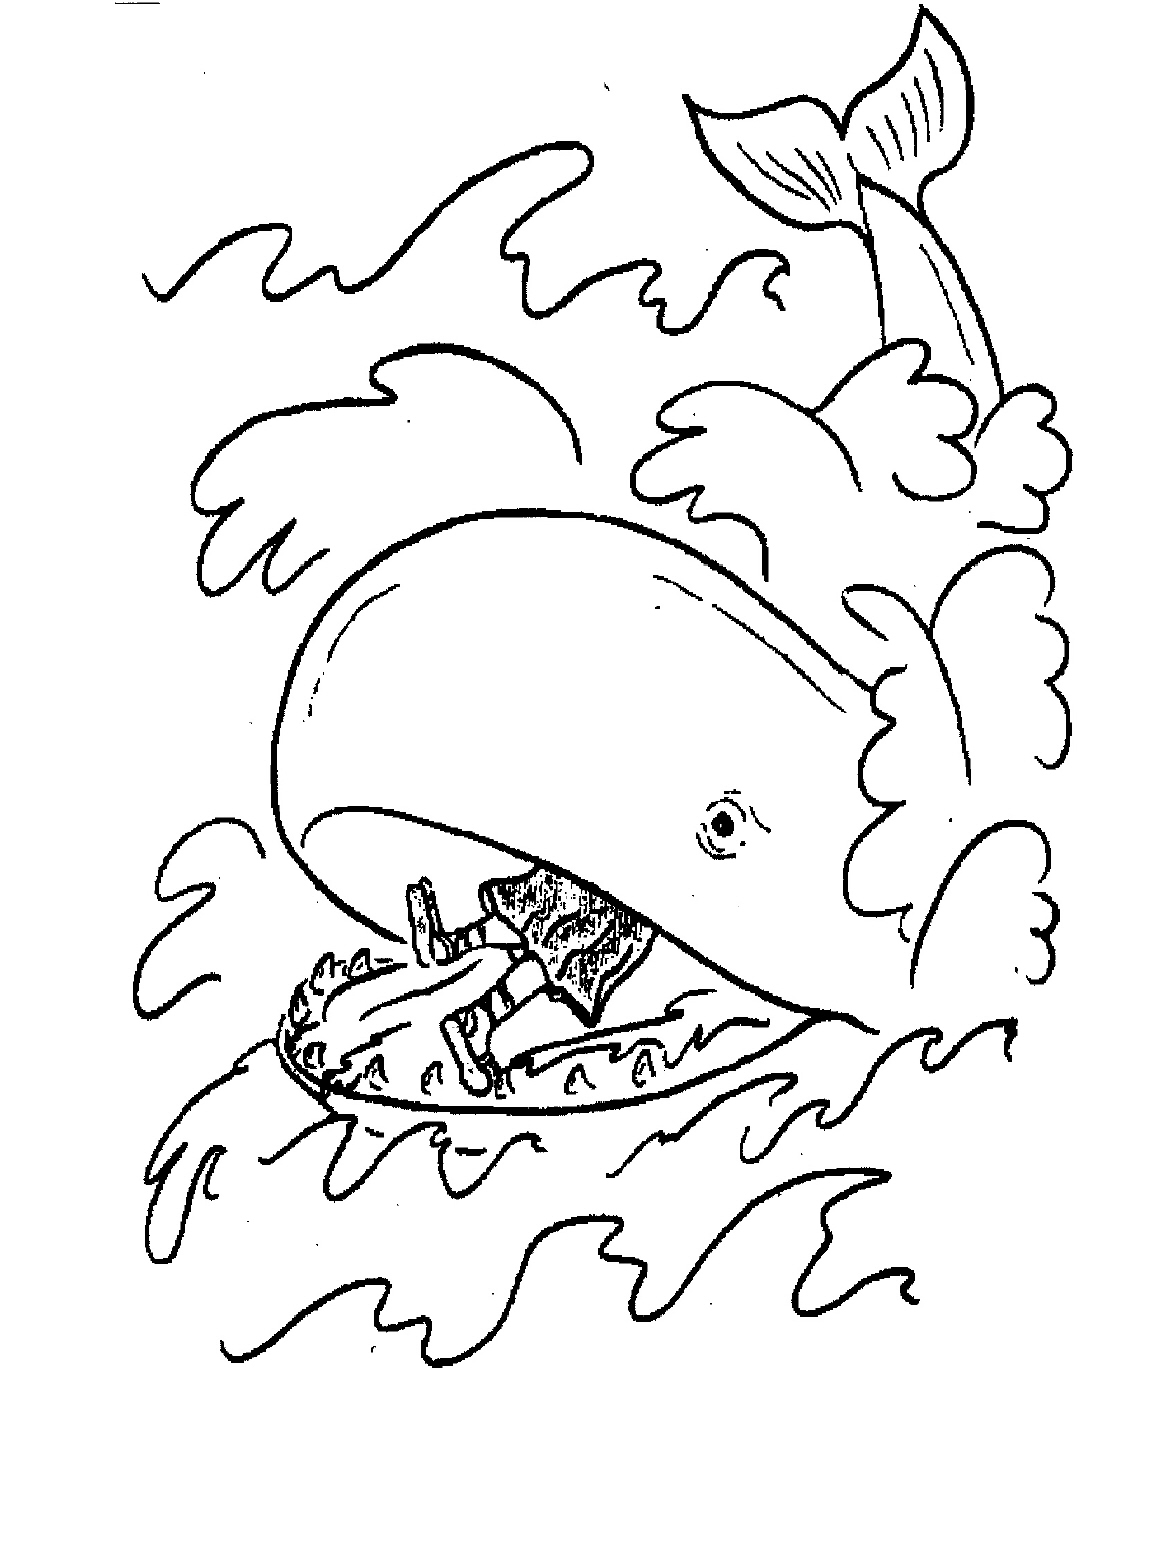 coloring printable jonah and the whale coloring pages of jonah and the whale clipart free and the coloring jonah whale printable